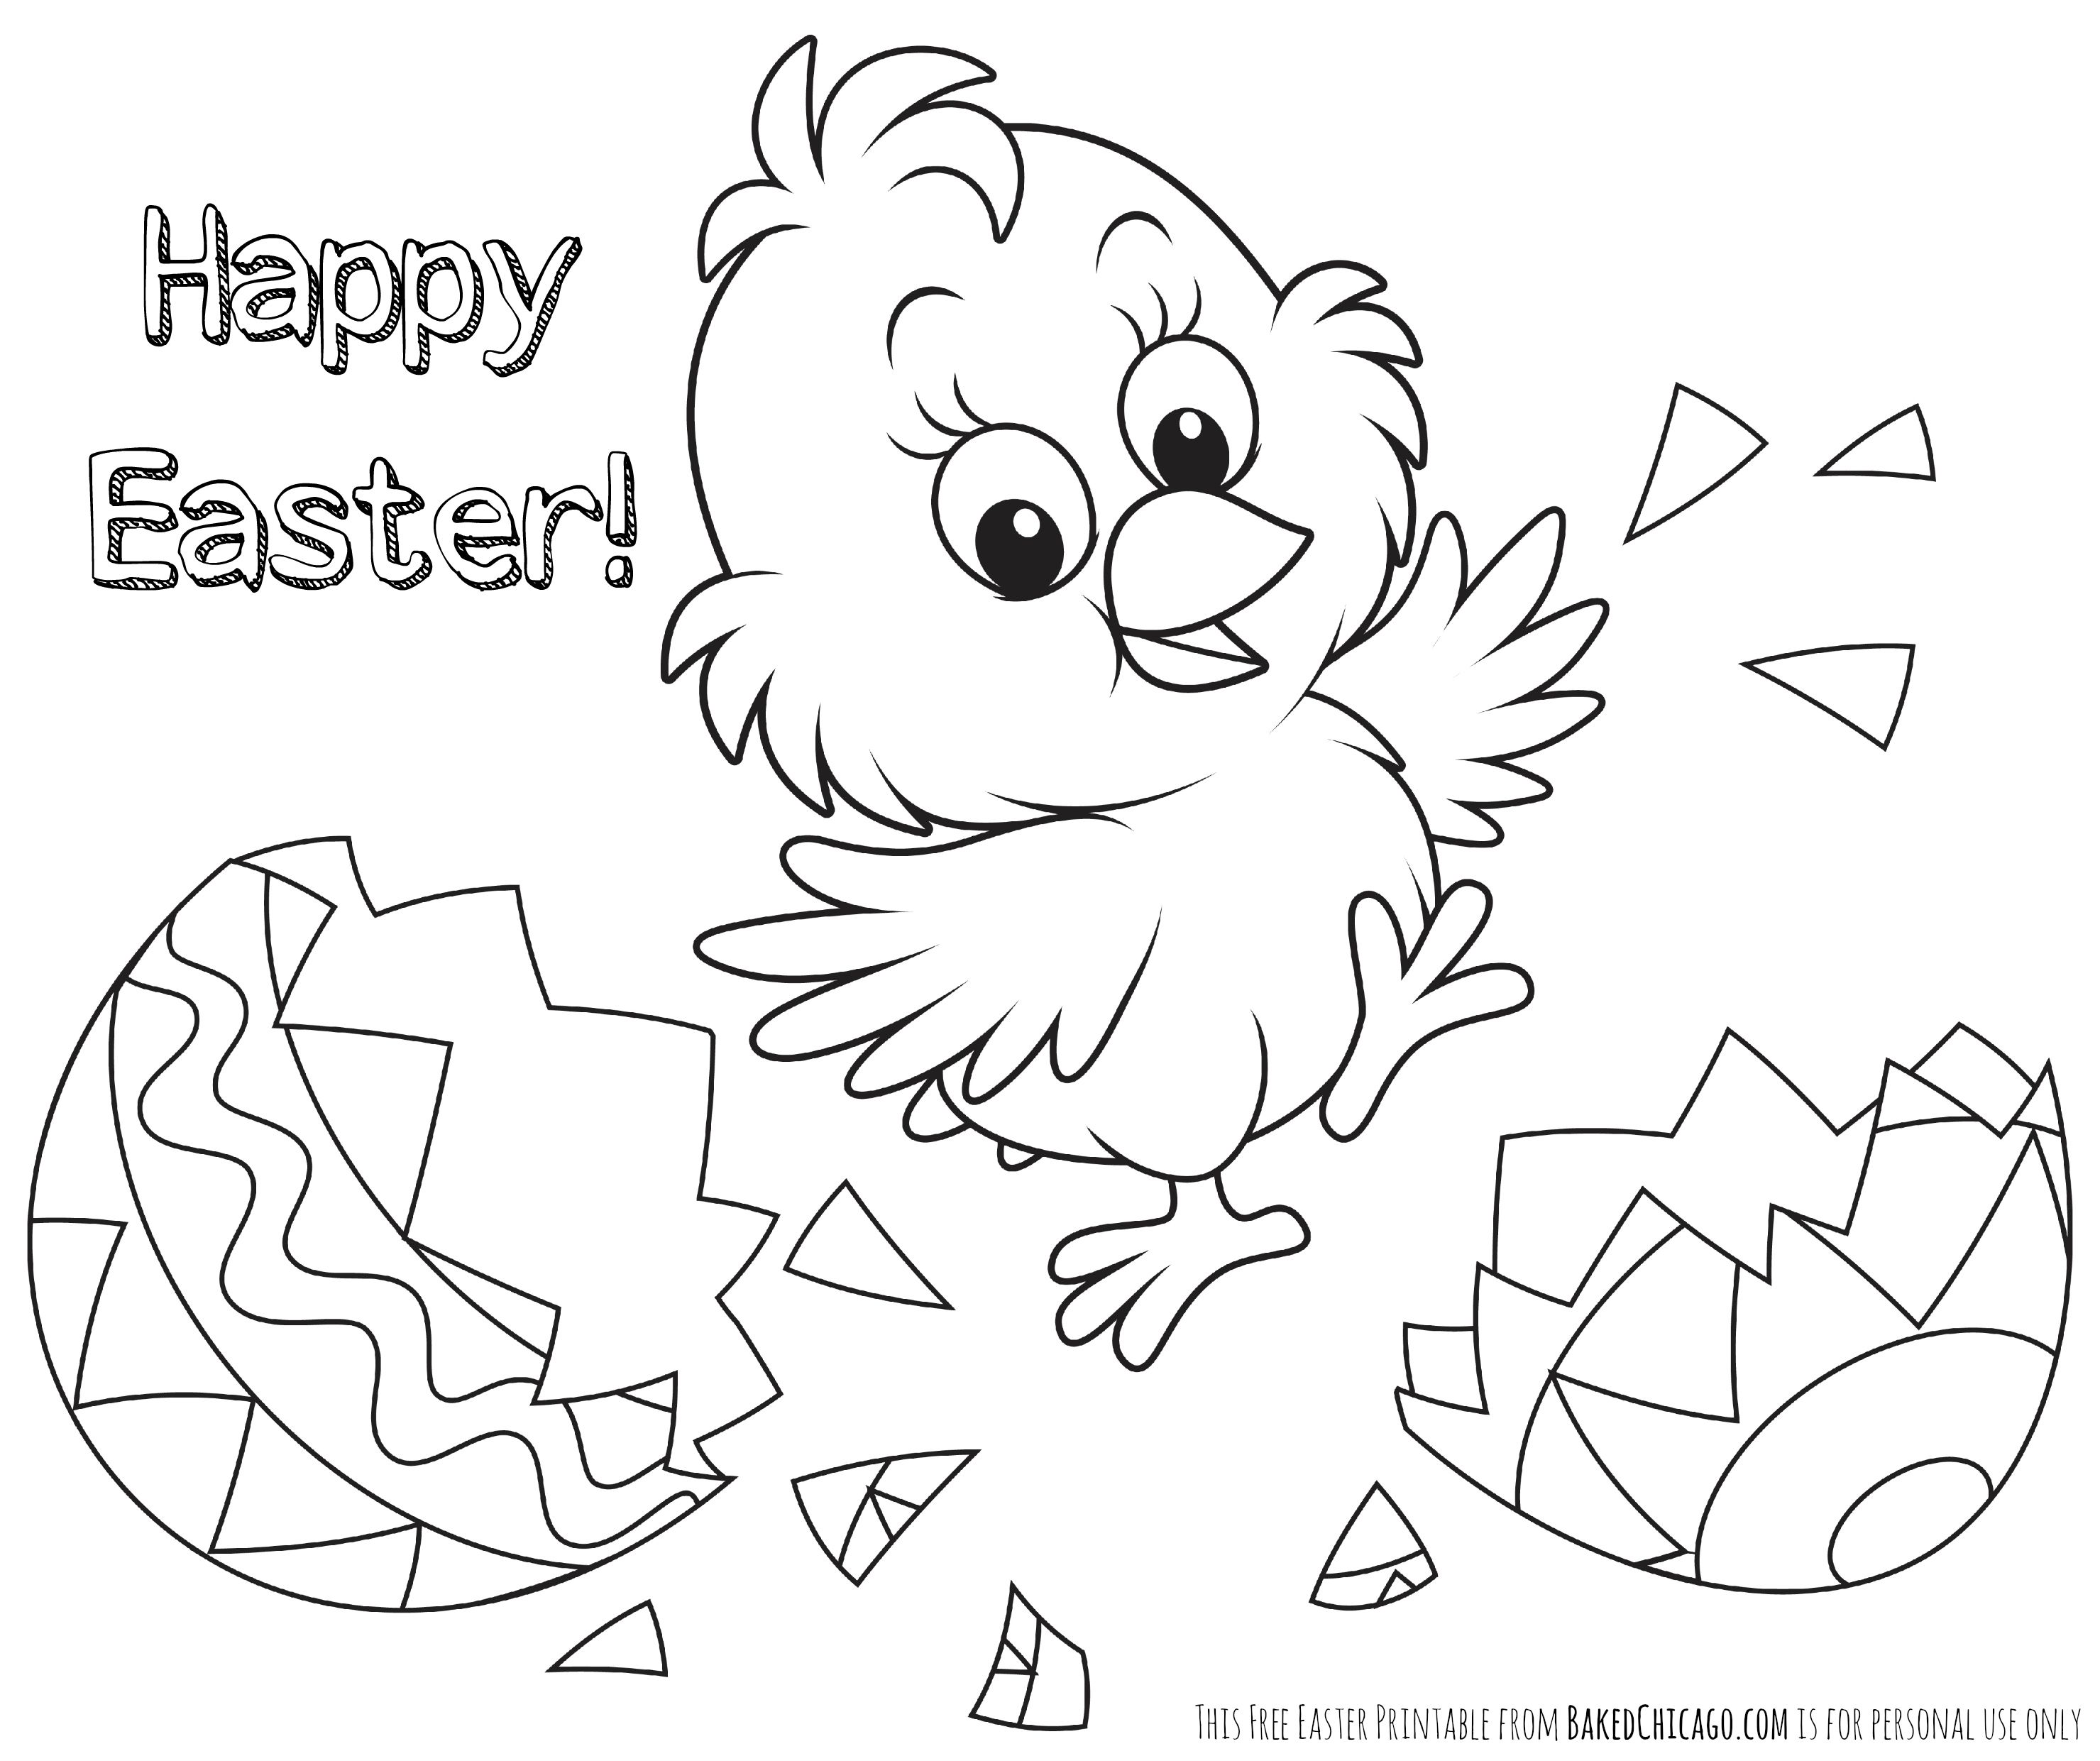 Coloring Easter Free Coloring Pages Printabl And Easter Holidays Egg Bask Easter Free Coloring Pages Easter Coloring Pages Bunny Coloring Pages Coloring Pages